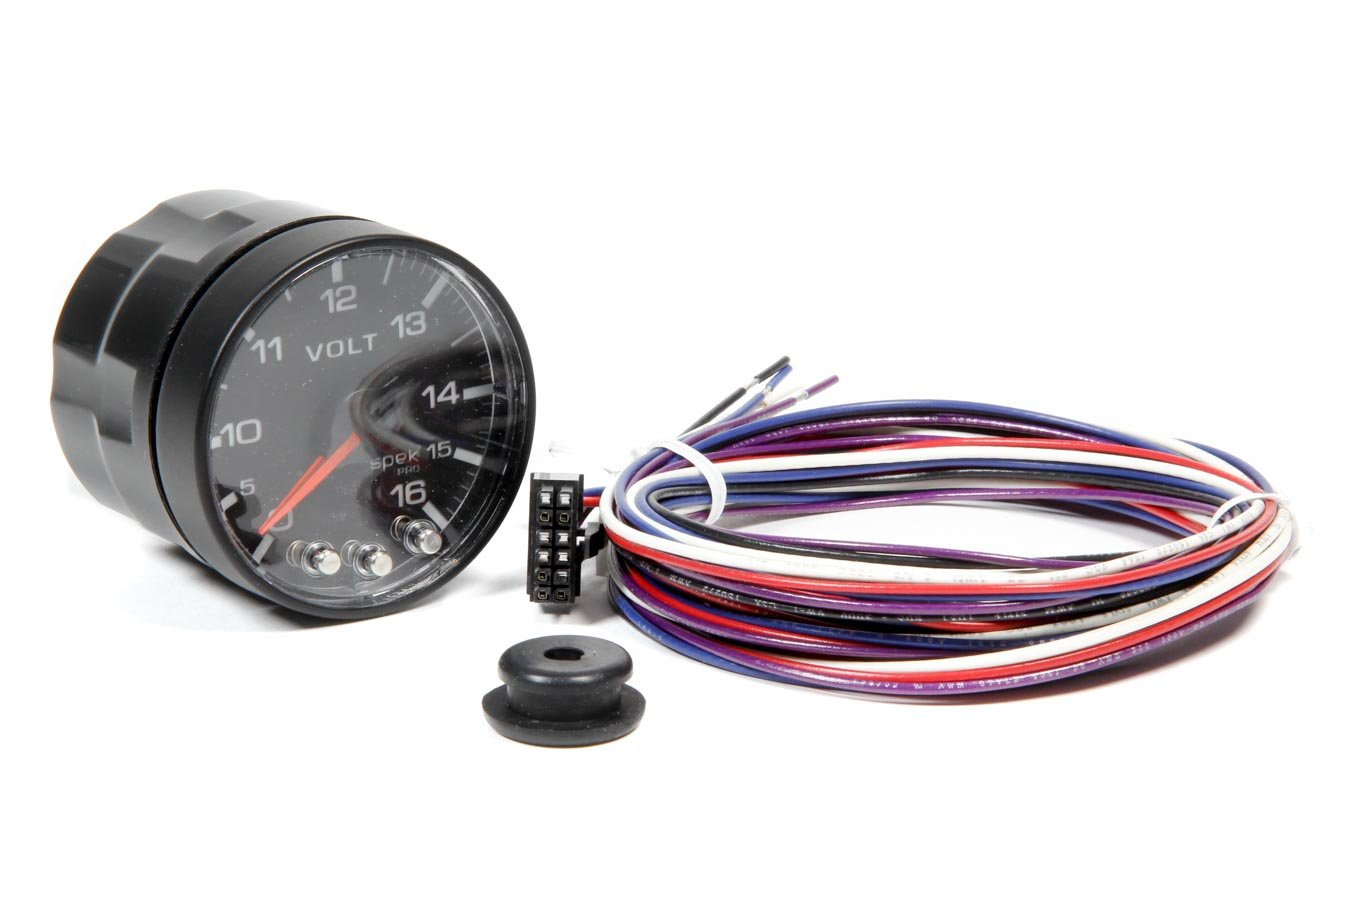 ProParts P344328 Spek-Pro 2-1/16'' Electric Voltmeter Gauge (52.4mm, 0-16 Volts) by ProParts